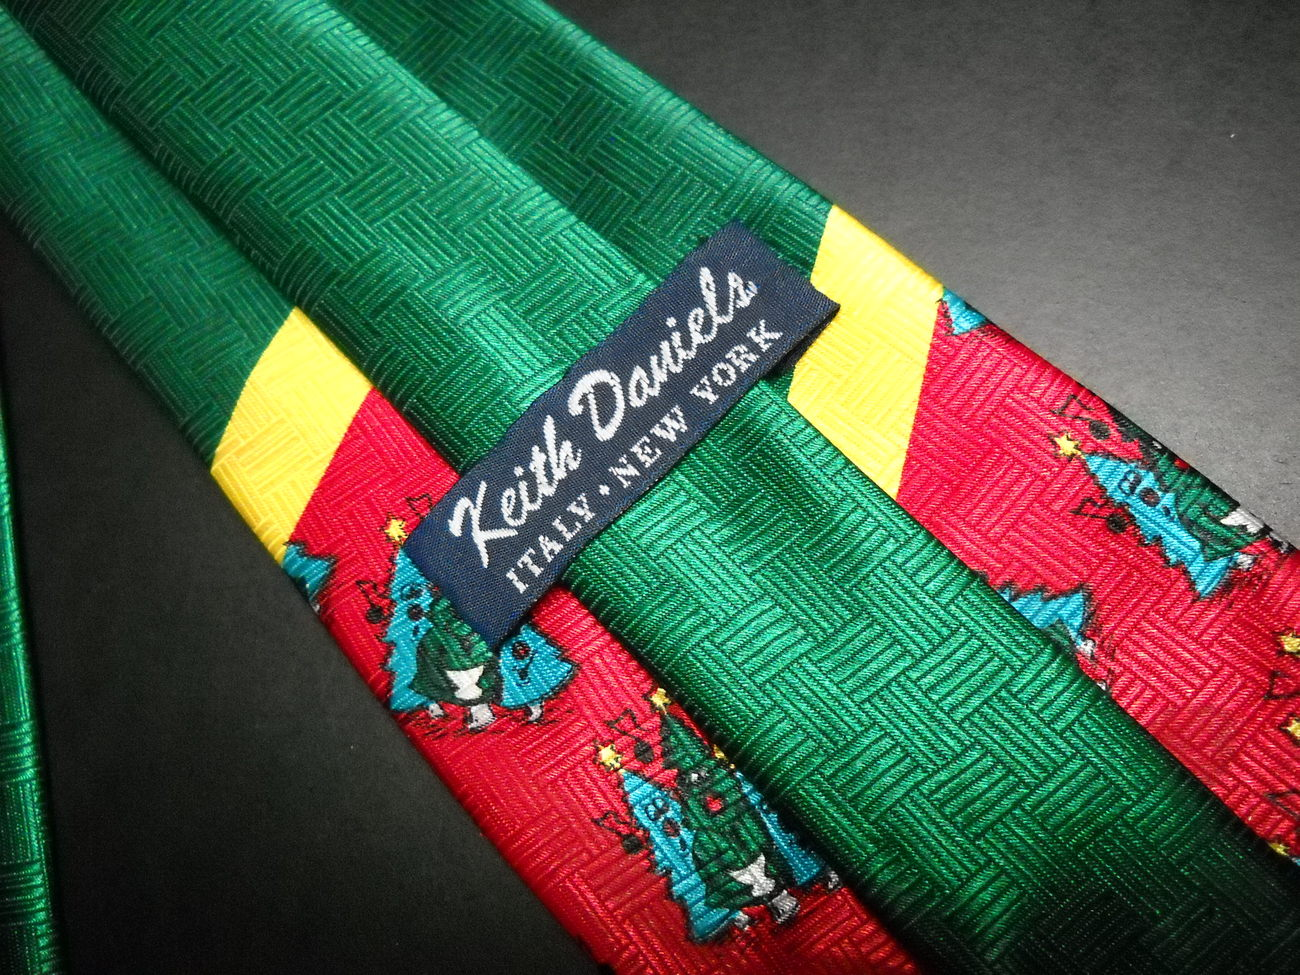 Keith Daniels Neck Tie Singing Oh Christmas Trees On Bright Red Green and Gold